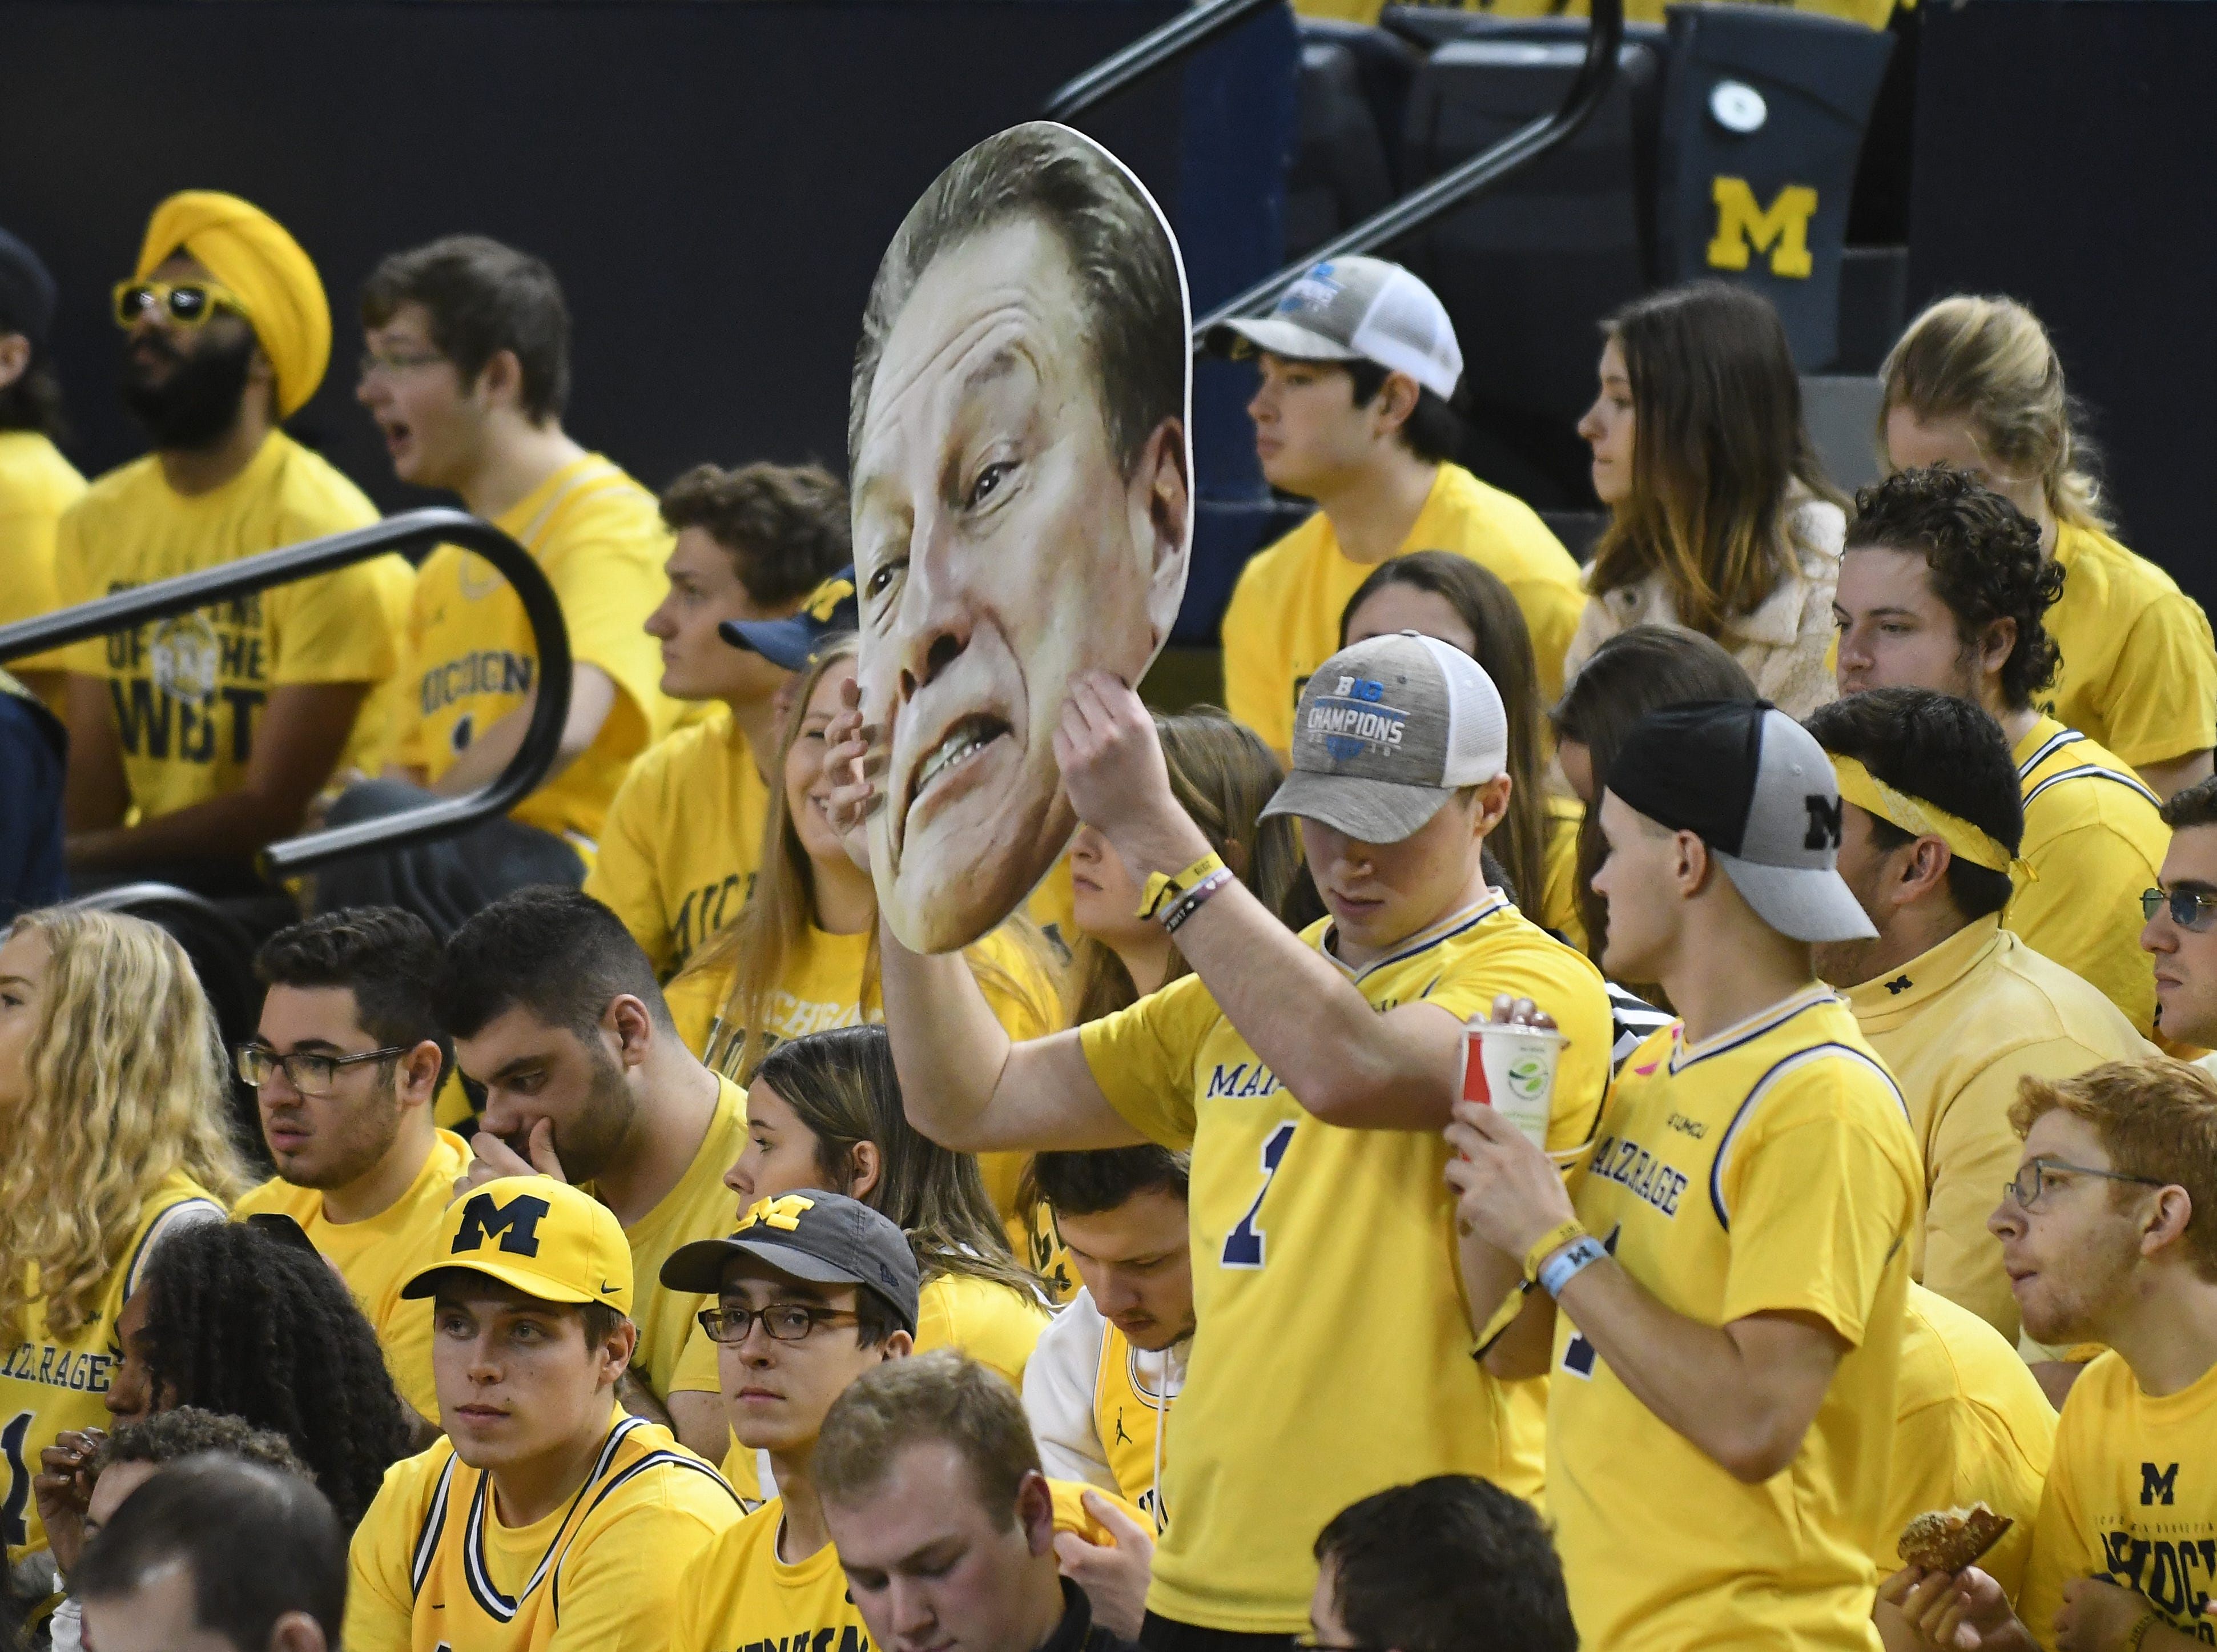 Michigan State head coach Tim Izzo's head floats amongst the Michigan fans in the Maize Rage before the game.